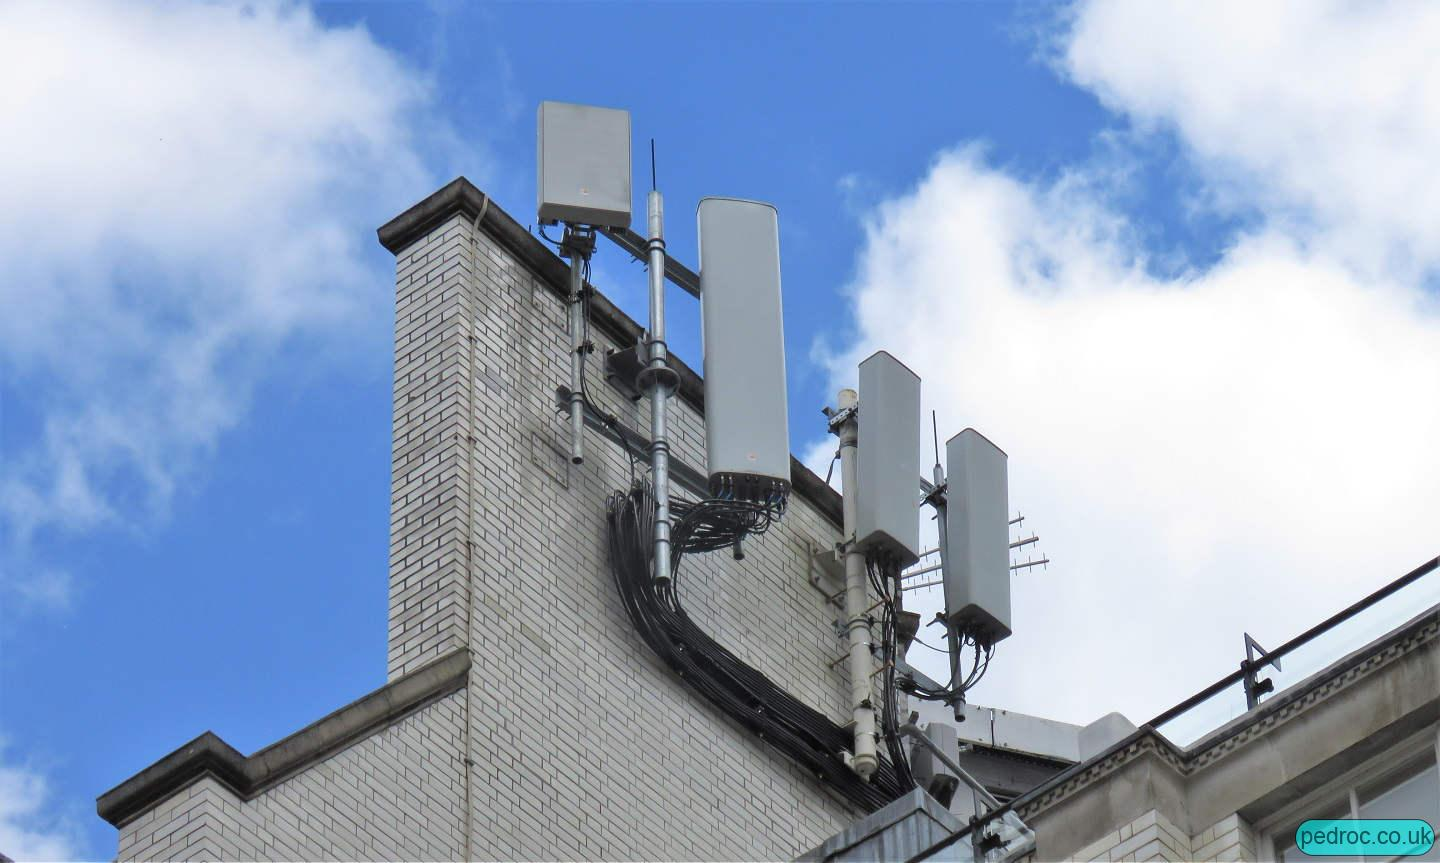 O2 are the left two panels, including Huawei massive MIMO for 5G. Vodafone have a pair of tri band Commscope panels.